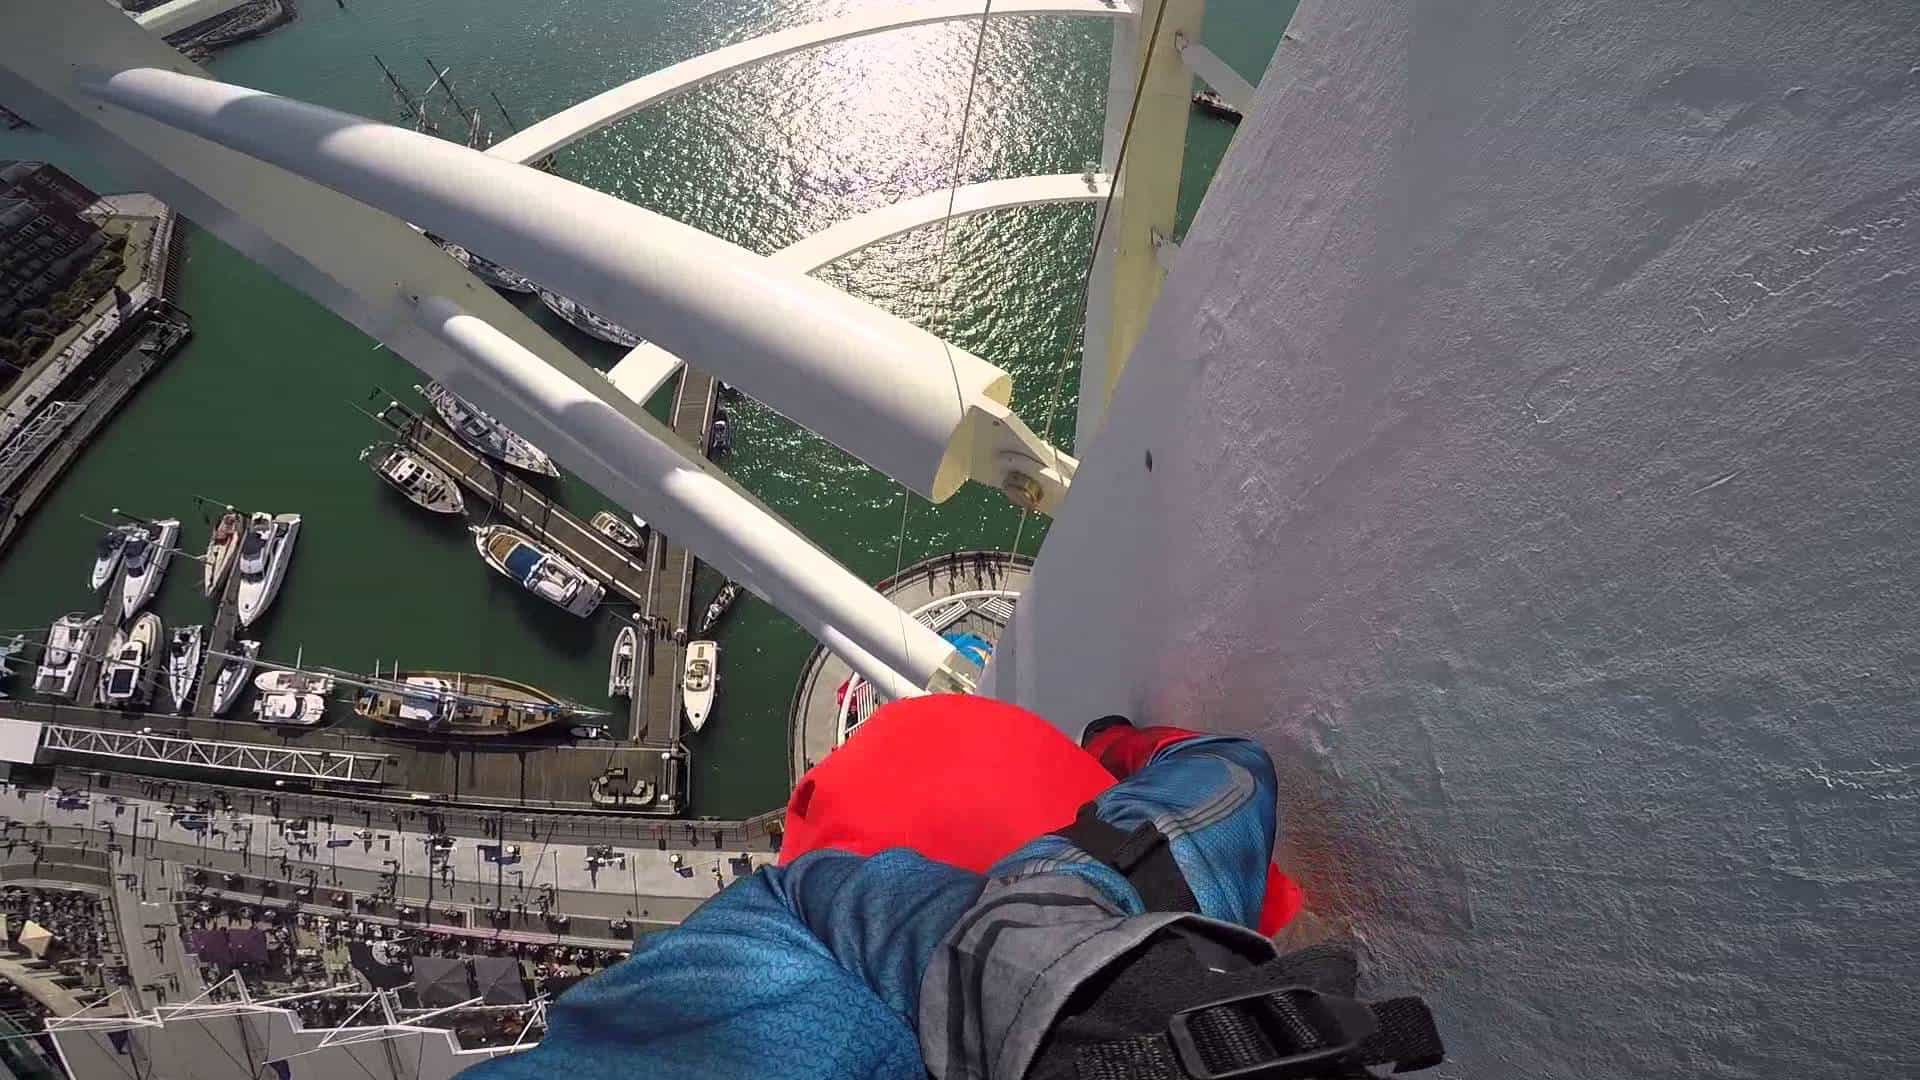 Abseil the Iconic Emirates Spinnaker Tower!